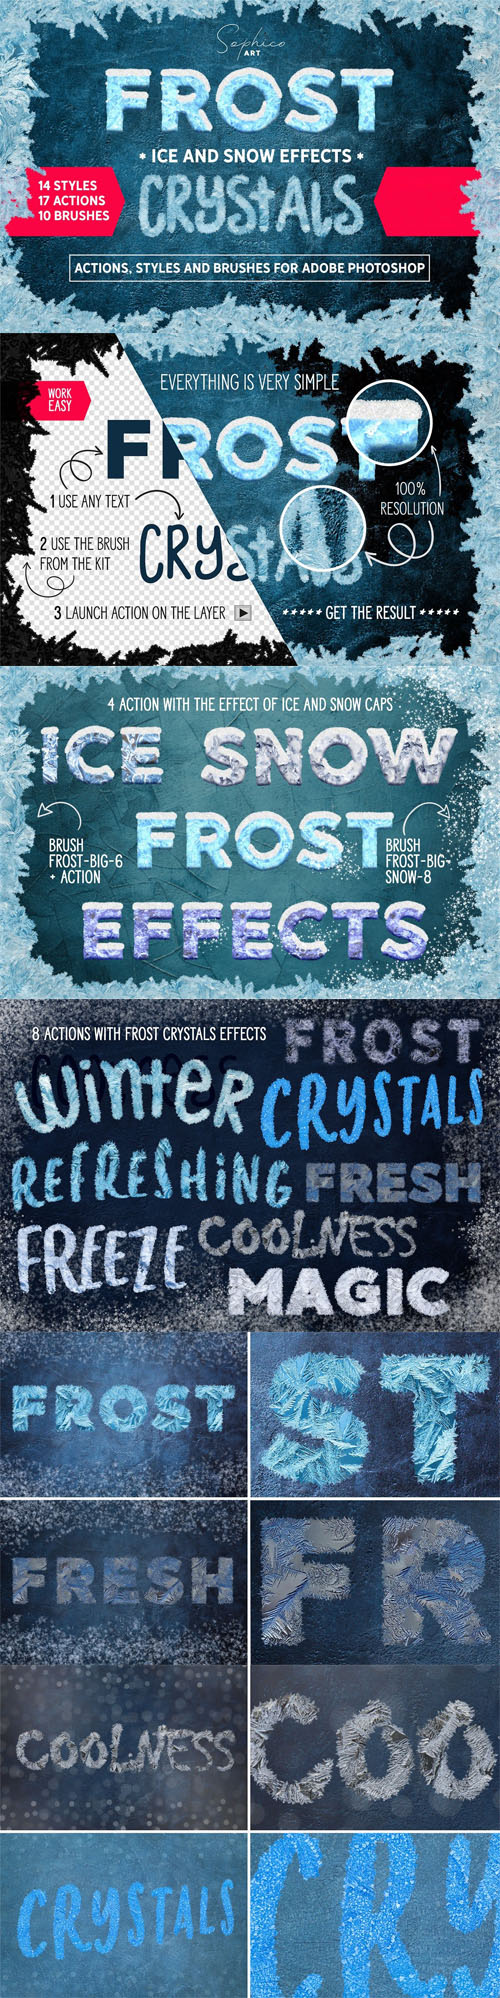 Frost Styles - Ice & Snow Effects for Adobe Photoshop